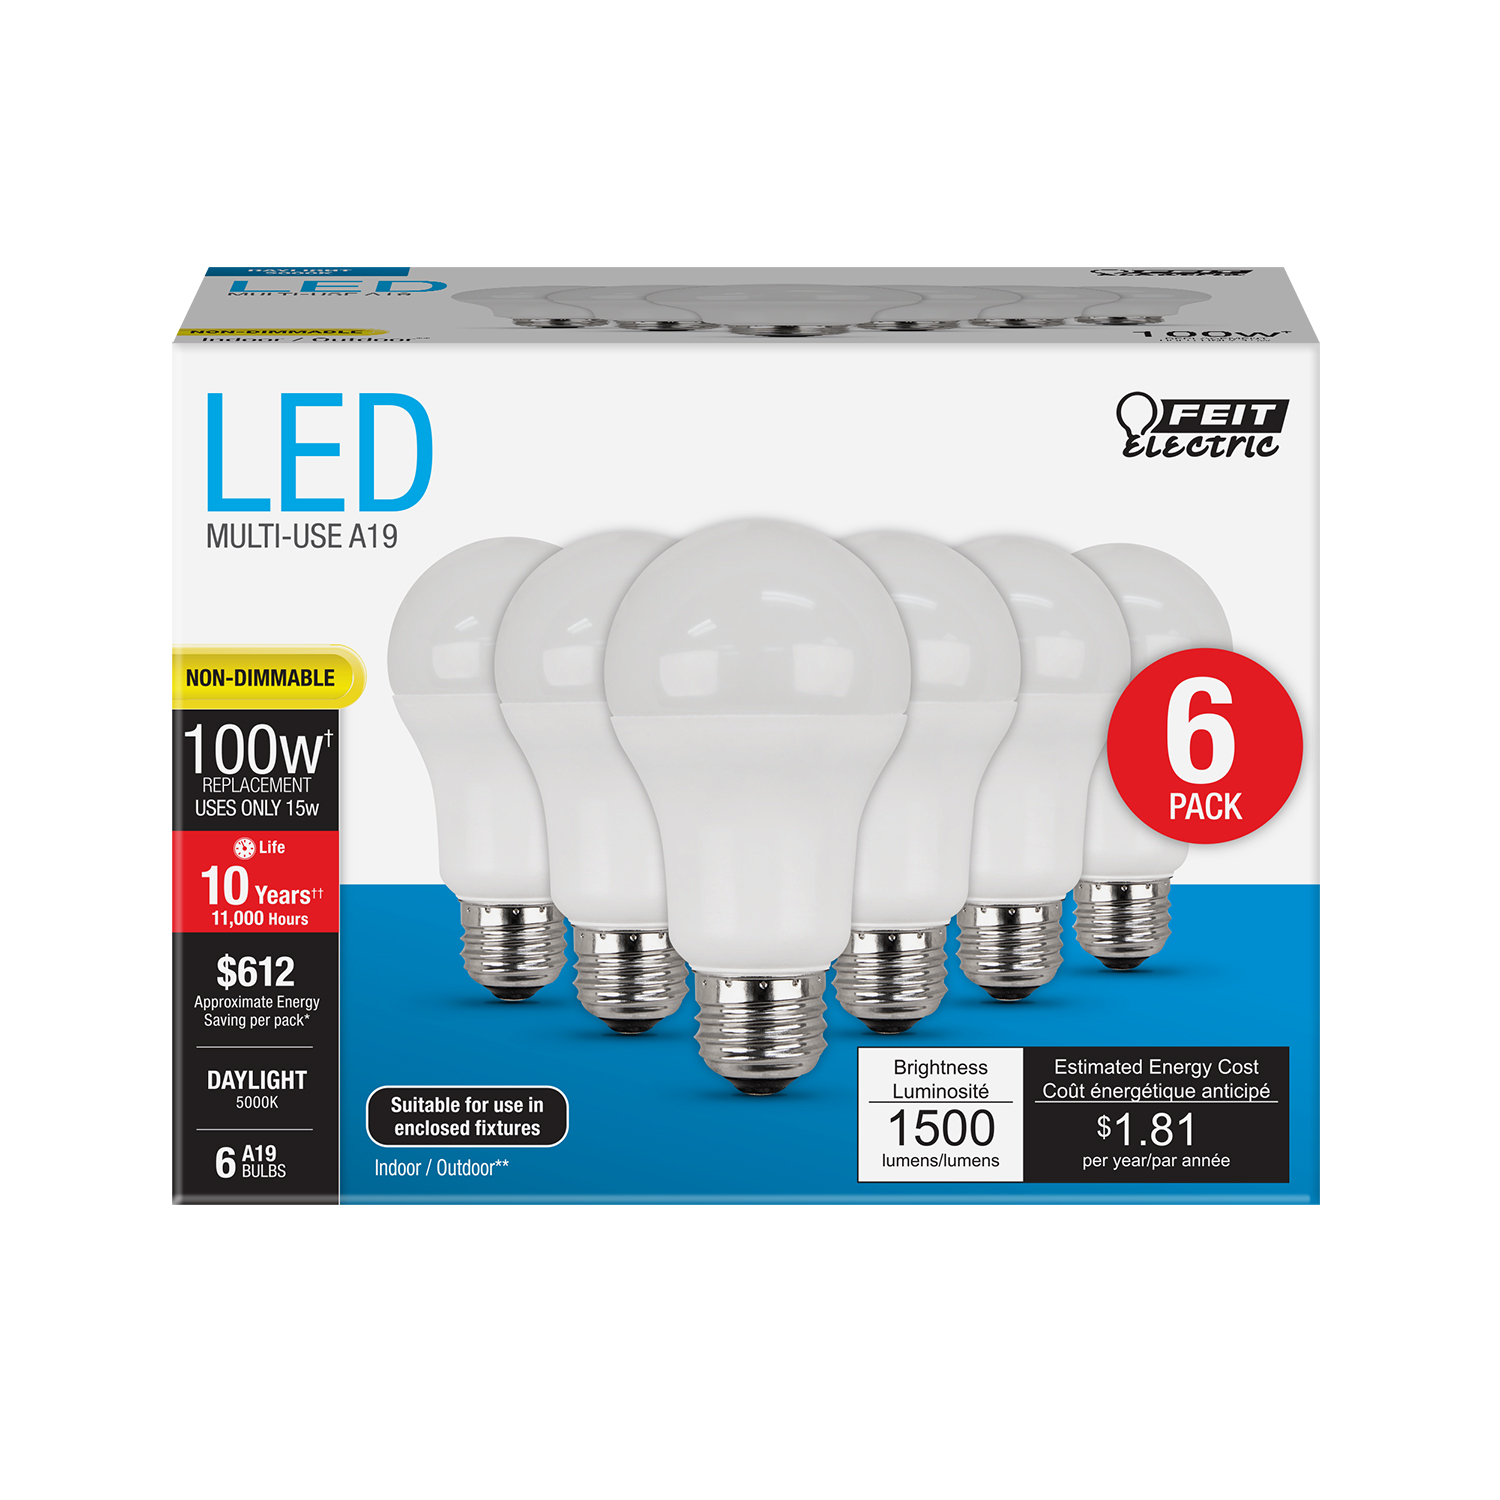 General Electric Led Bulbs: 1500 Lumen 5000K Non-Dimmable A19 LED